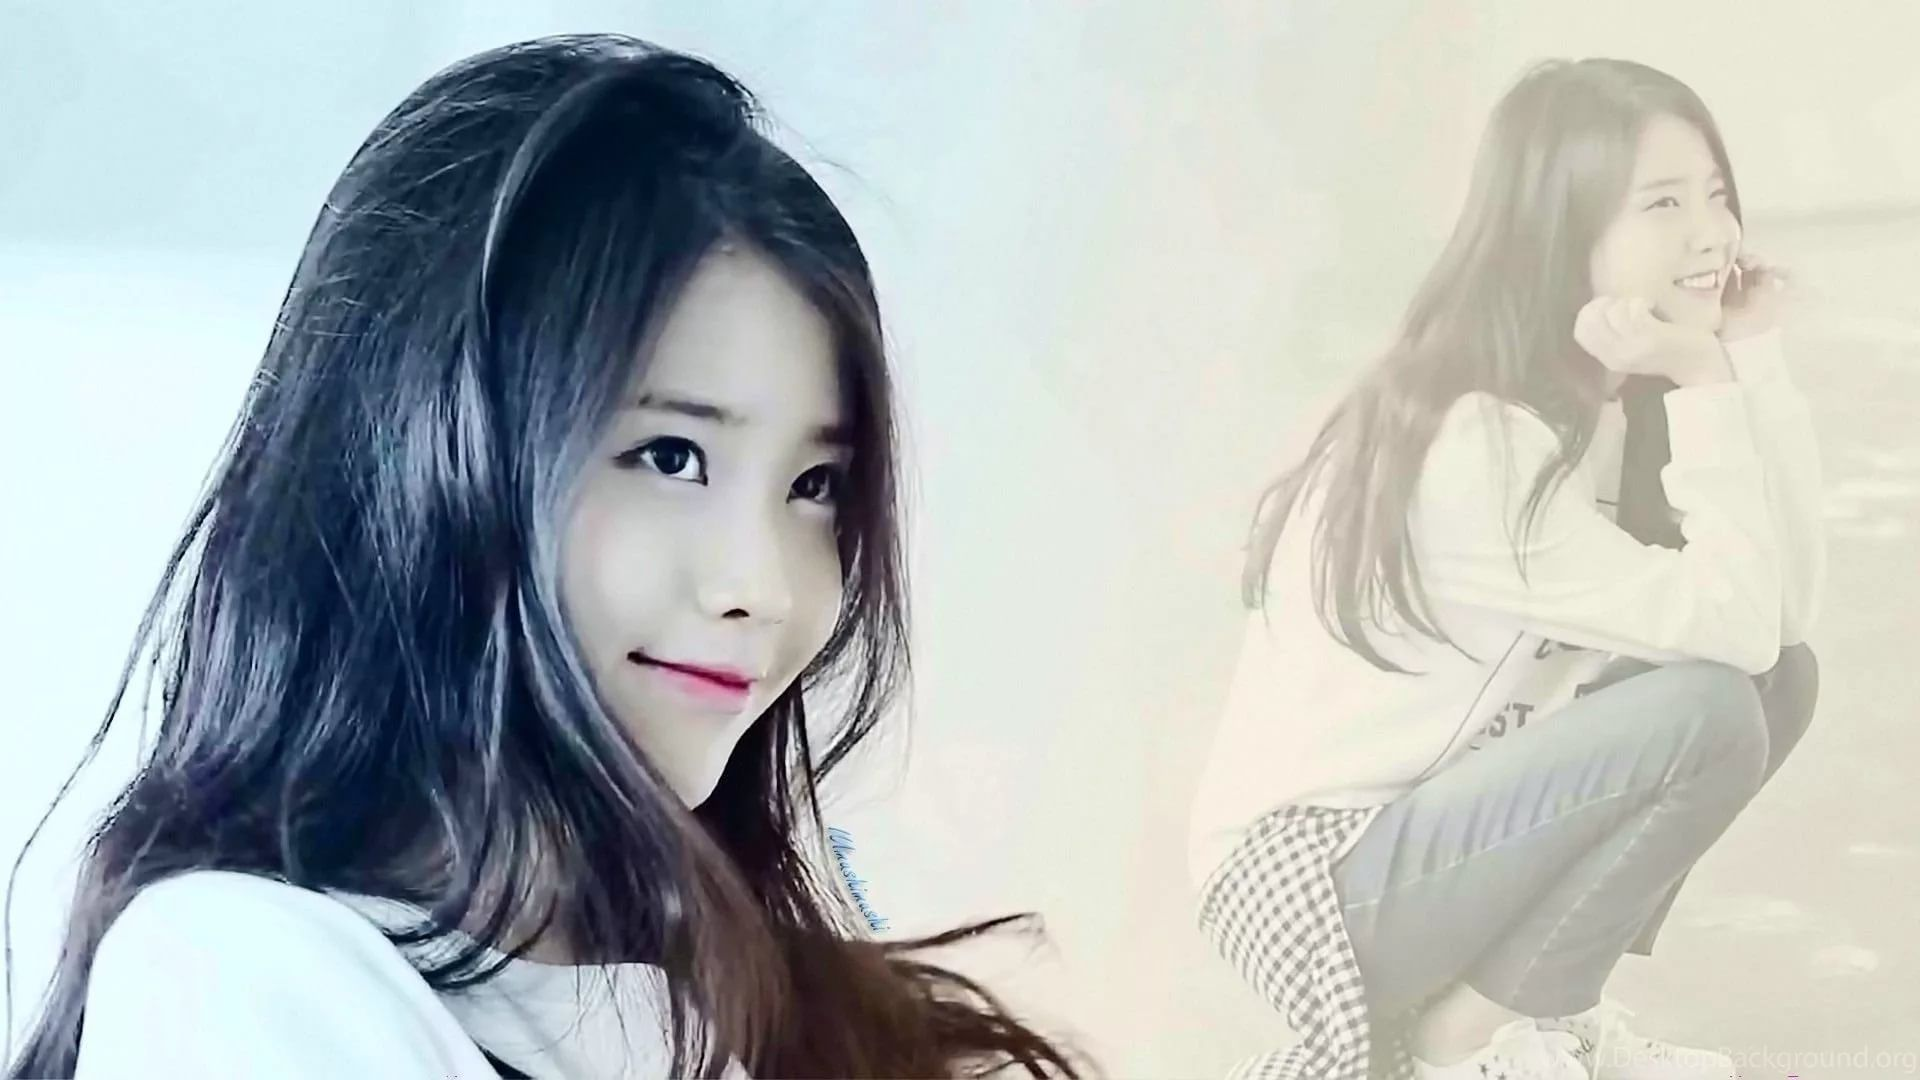 Iu Wallpaper and Background